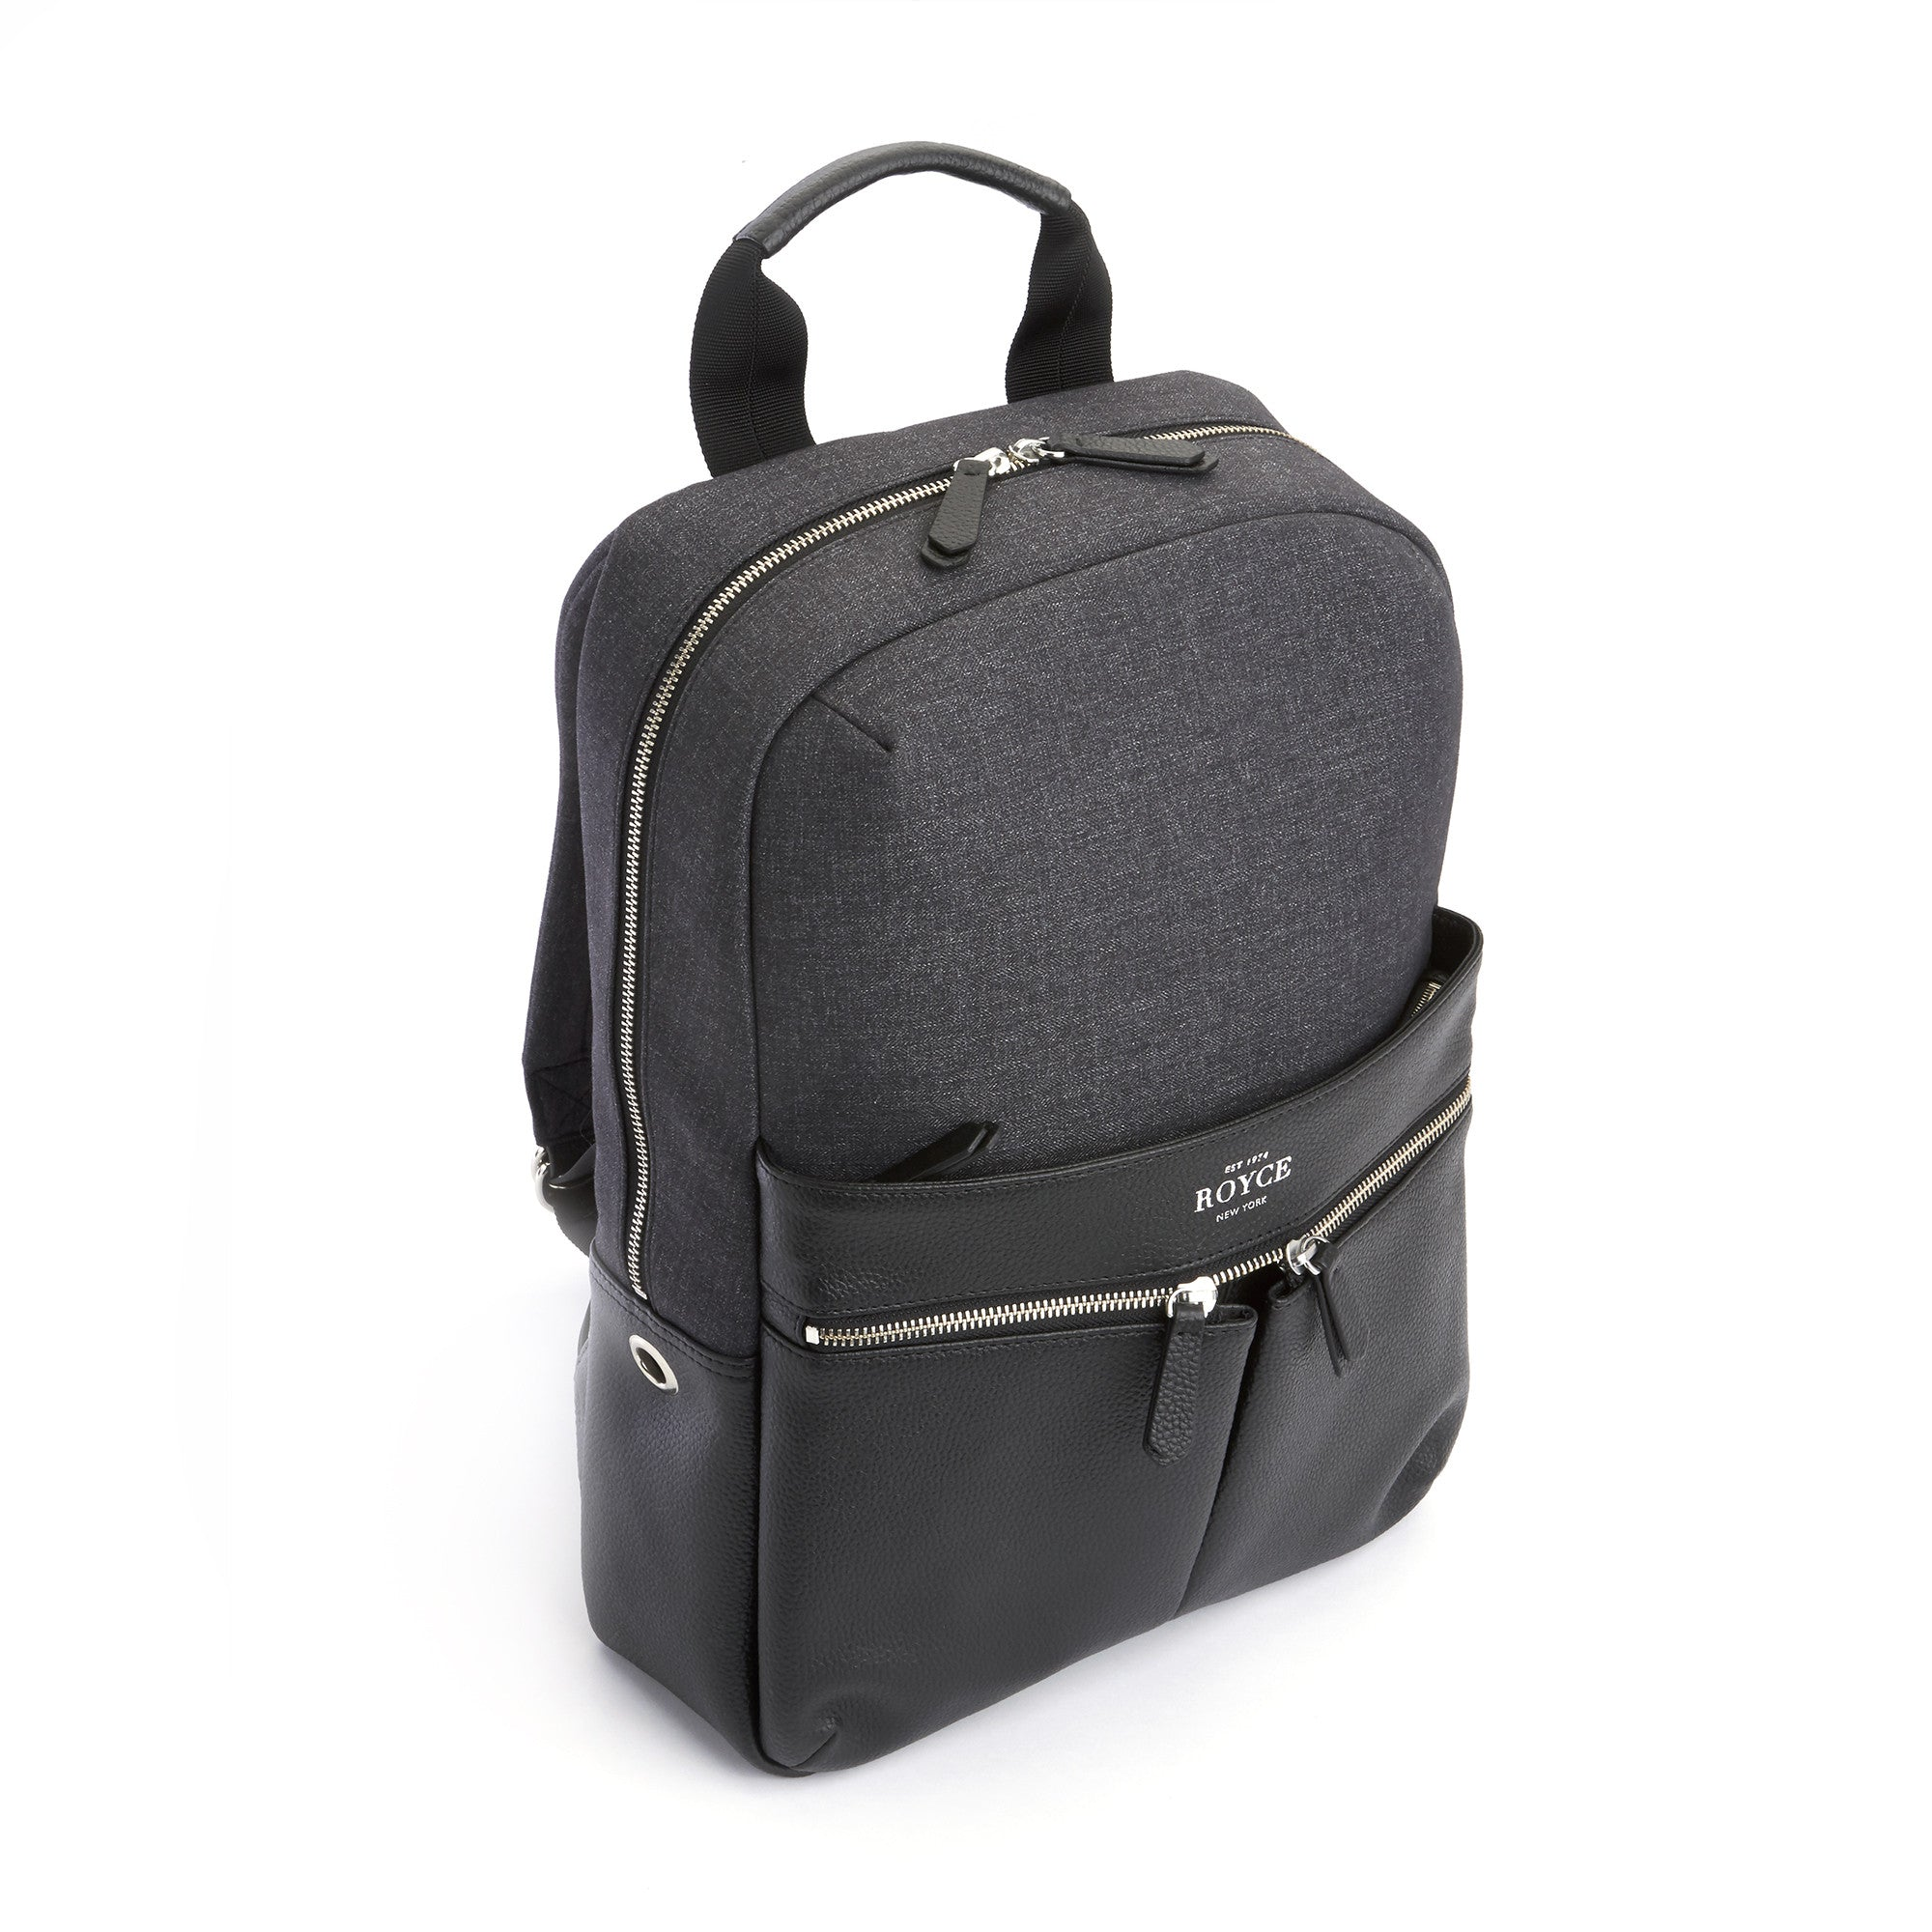 Royce Leather Power Bank Charging Leather Laptop Backpack - Black